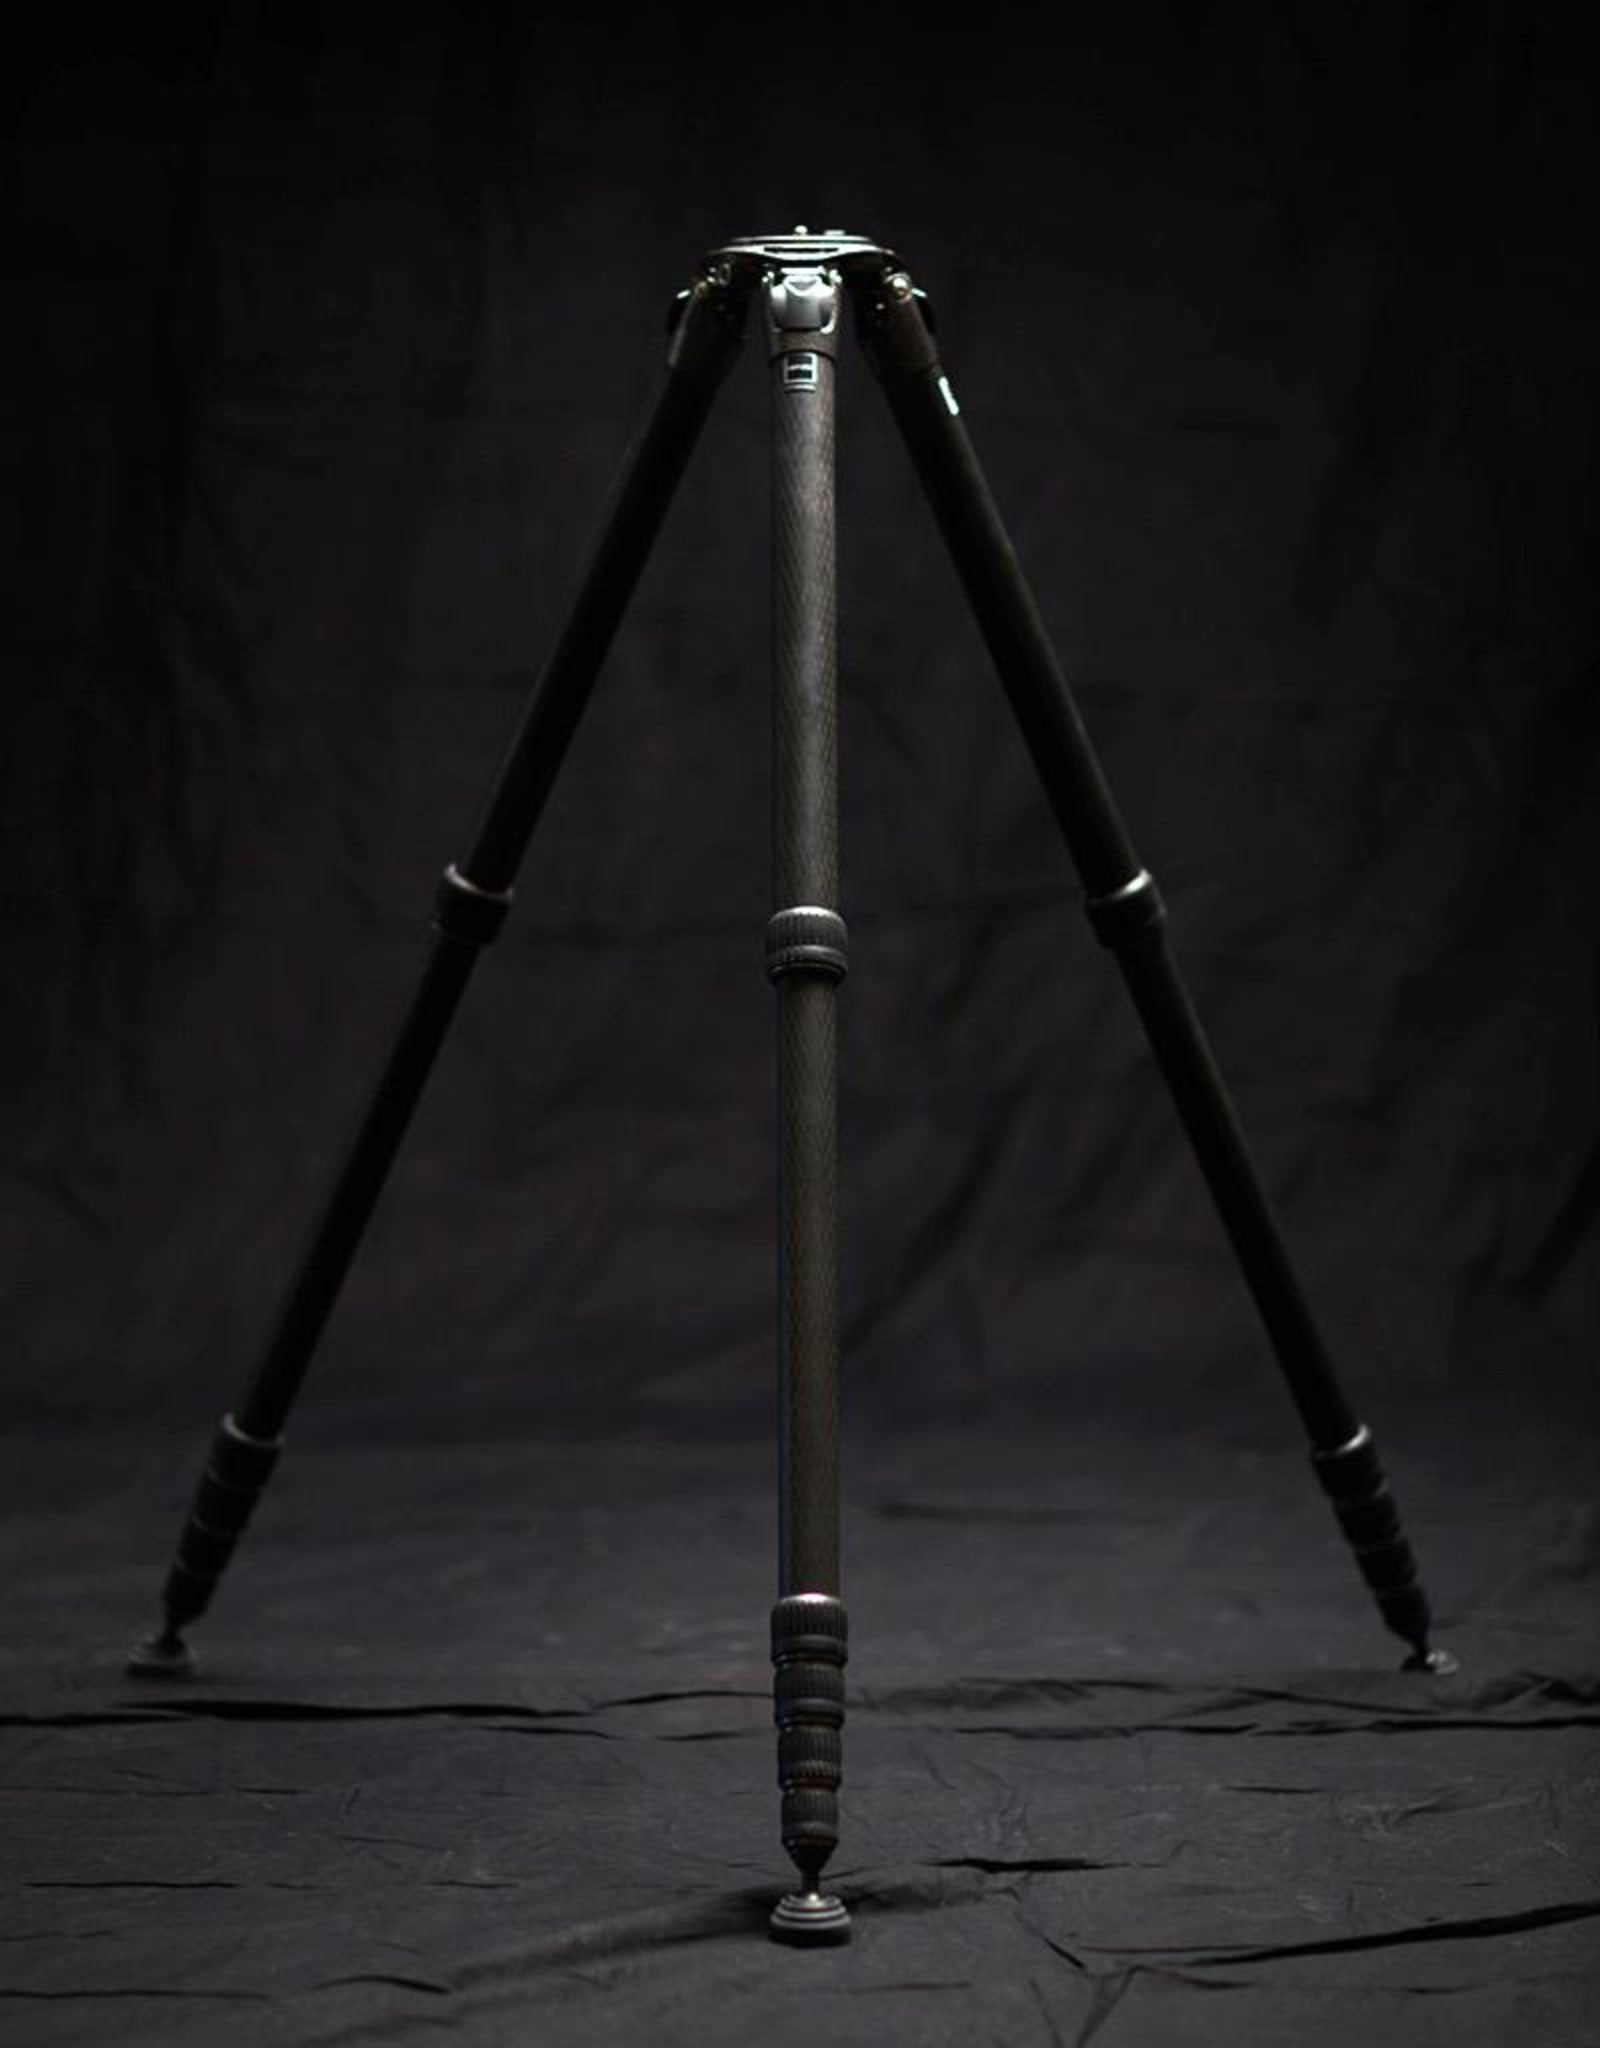 Gitzo Gitzo GT5563GS SERIES 5 eXact SYSTEMATIC TRIPOD 6-SECTION GIANT